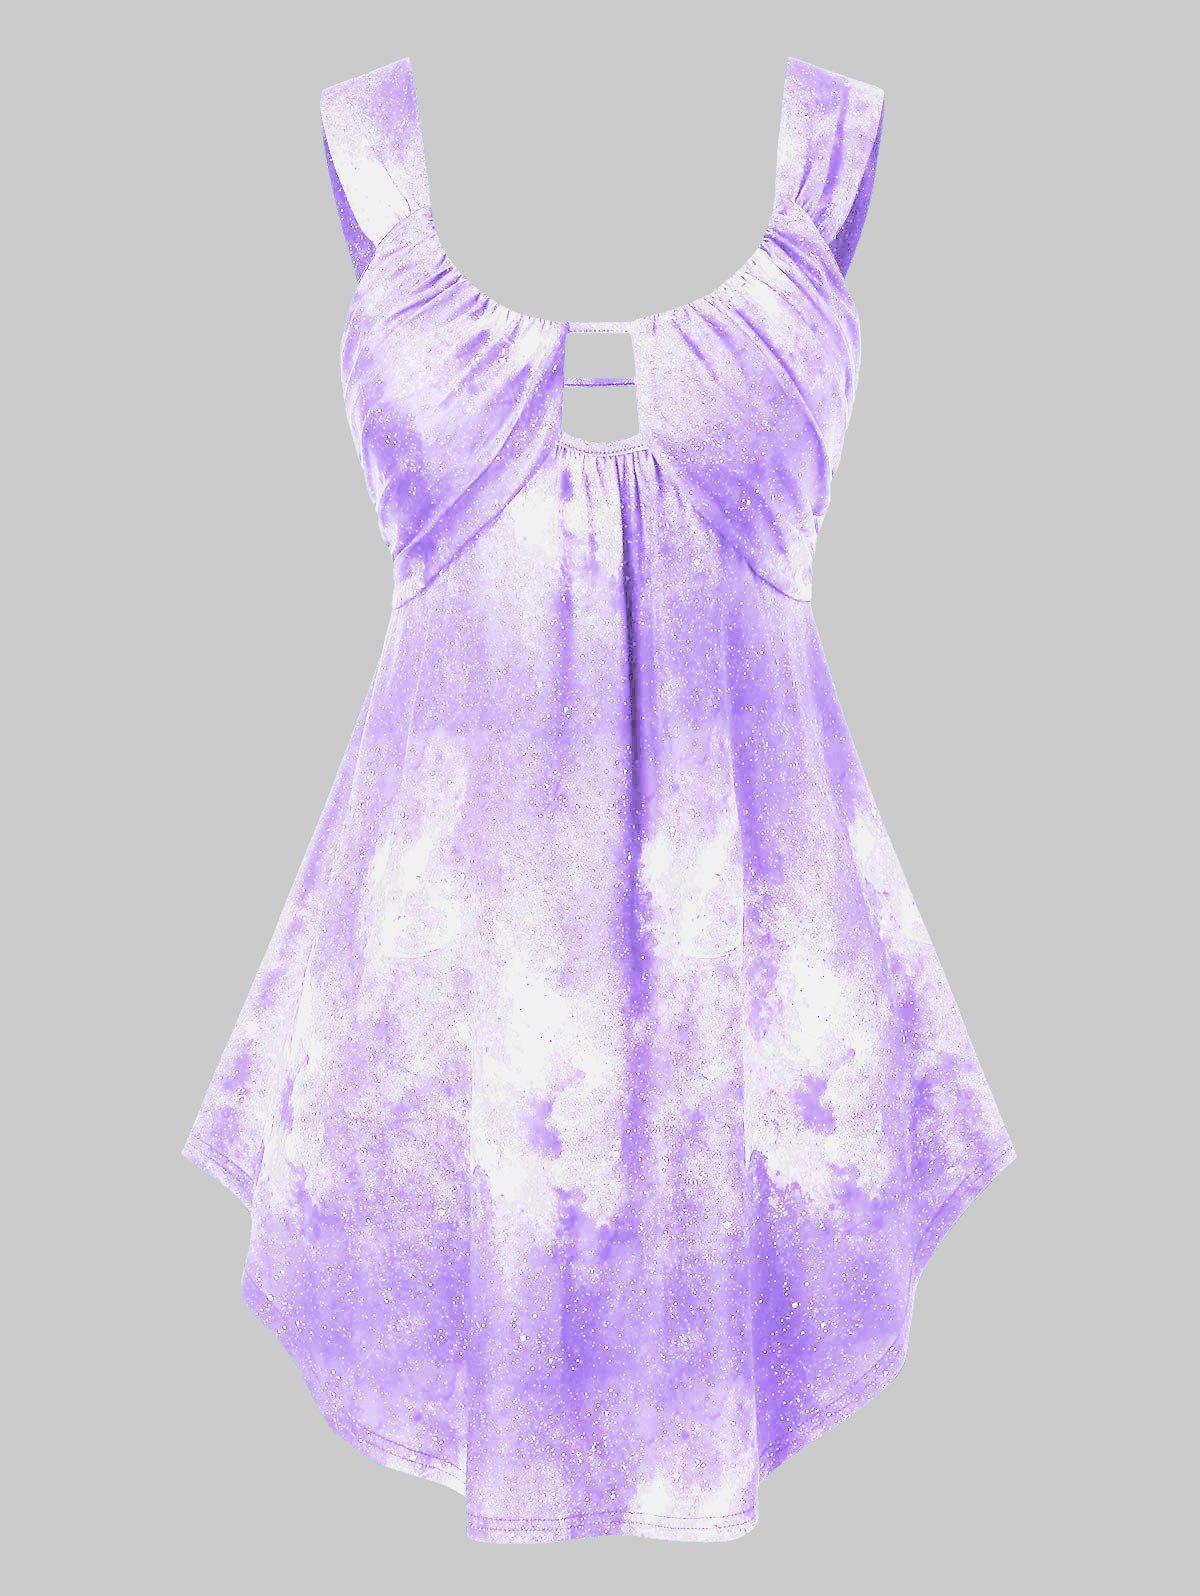 Plus Size 3D Galaxy Print Tie Dye Curved Tank Top - CROCUS PURPLE L